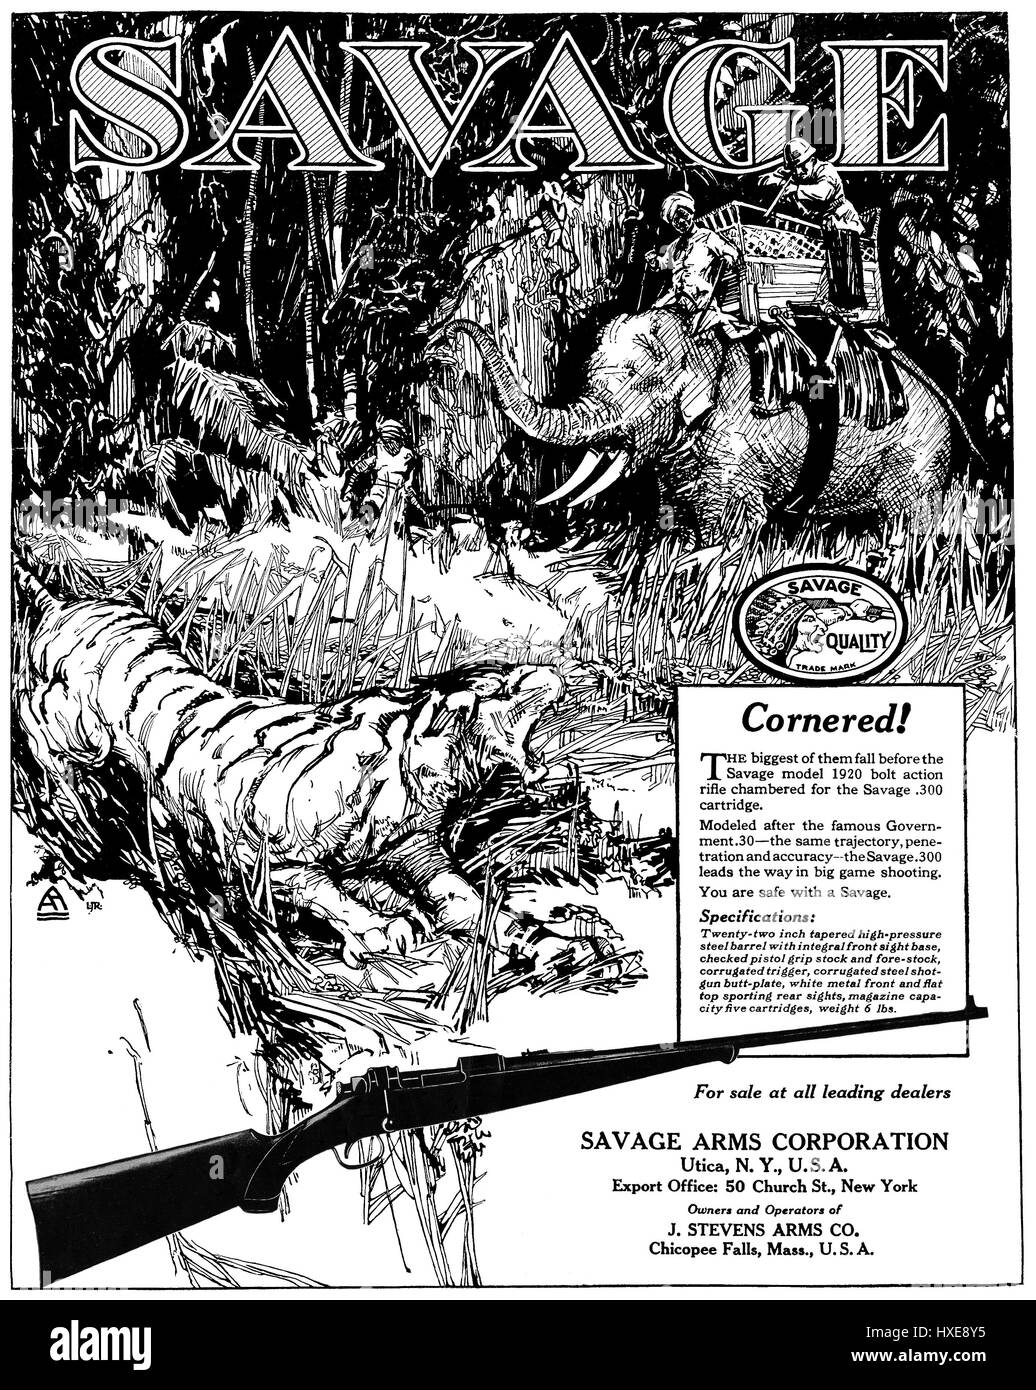 1922 Indian advertisement for the Savage Arms Corporation. - Stock Image